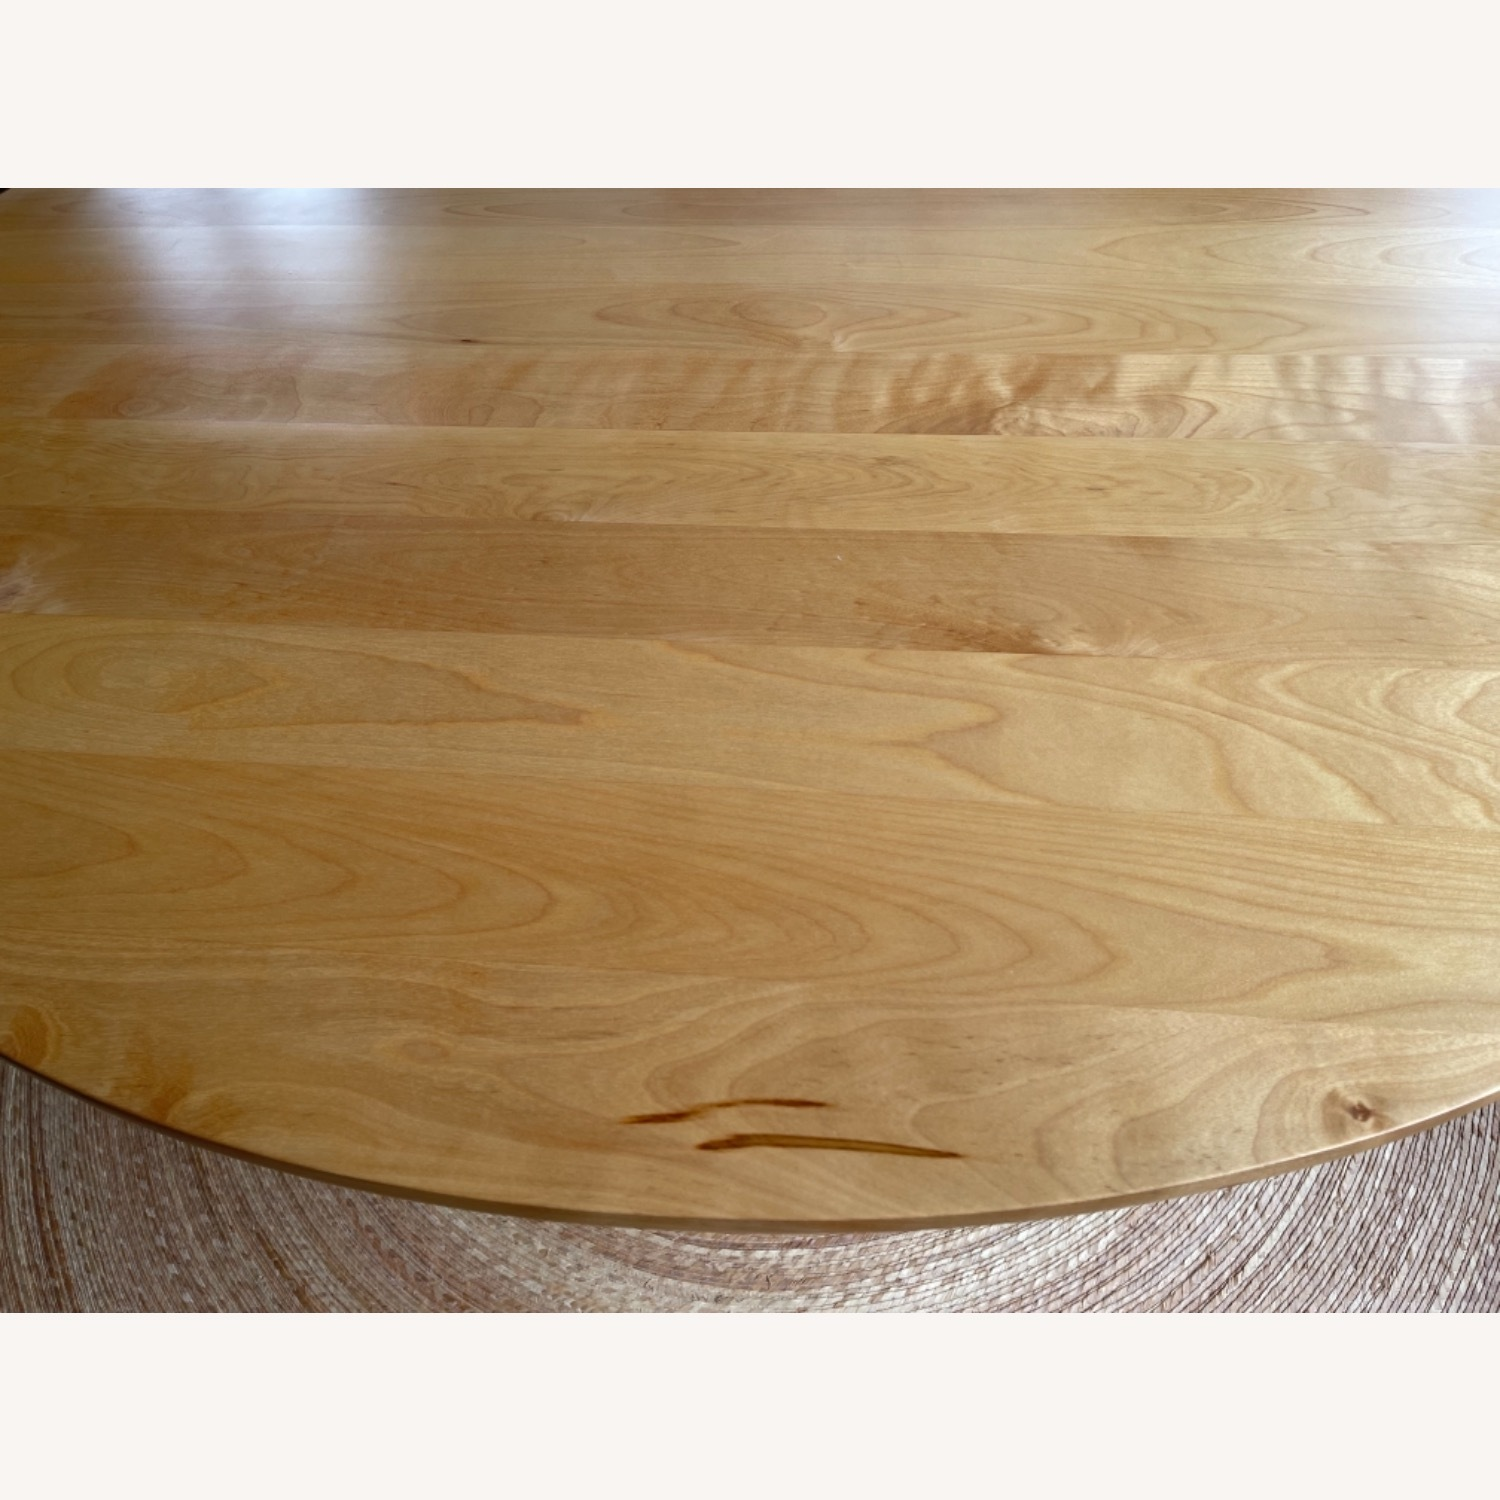 Birch Wood Round Dining Table 60 - image-6